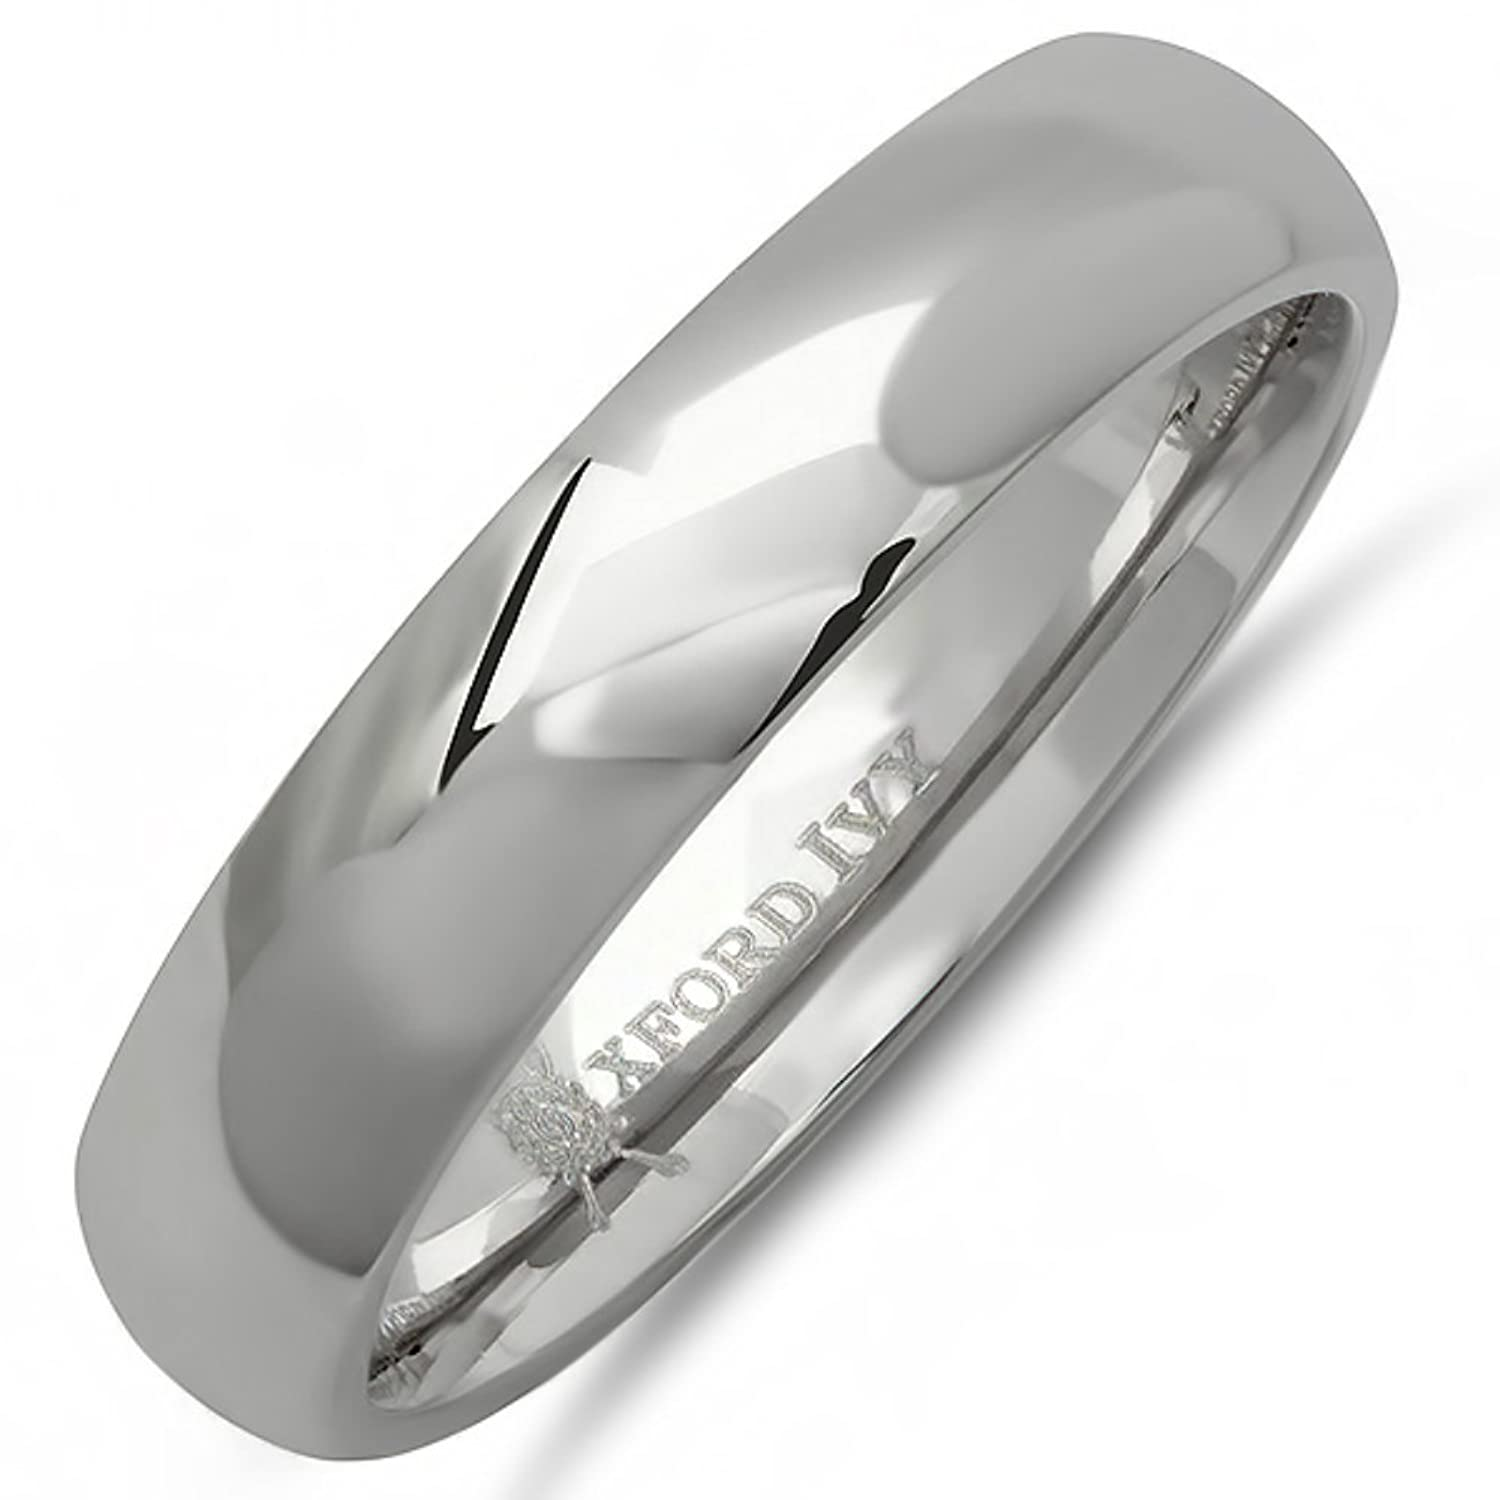 mens casavir how an is s hard used unique because light in extensively and titanium men ring bands materials jewelry it wedding of strong now as alternative particular metal